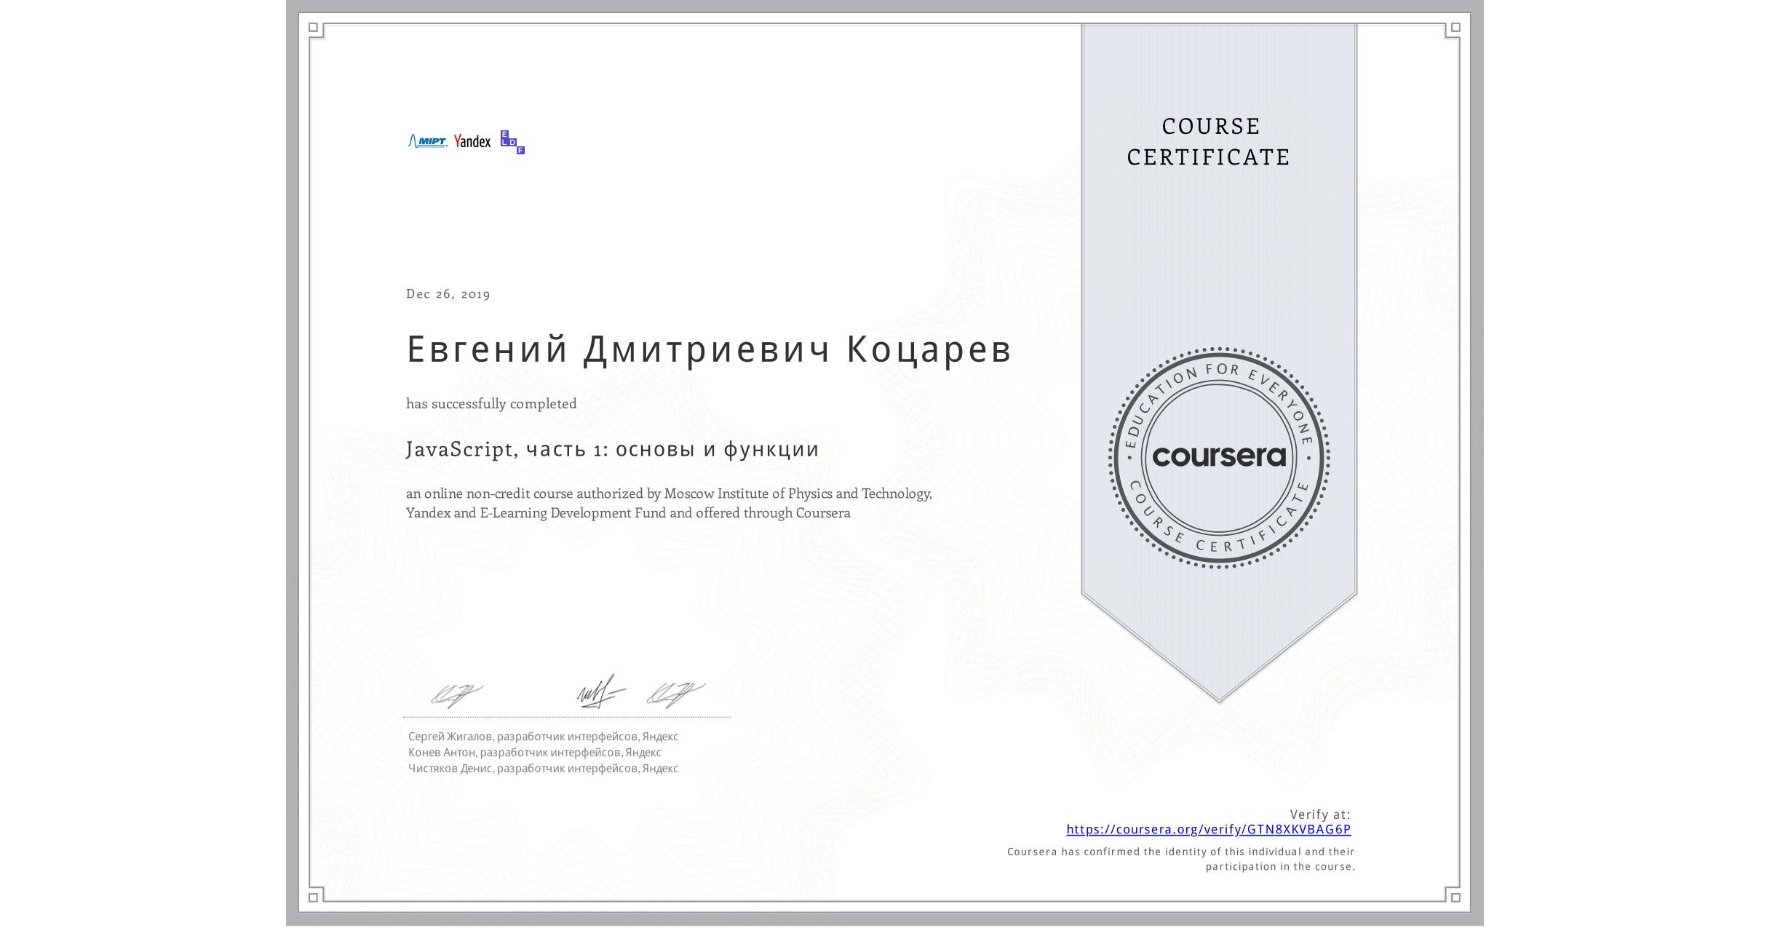 View certificate for Евгений Дмитриевич Коцарев, JavaScript, часть 1: основы и функции, an online non-credit course authorized by Moscow Institute of Physics and Technology, Yandex & E-Learning Development Fund and offered through Coursera